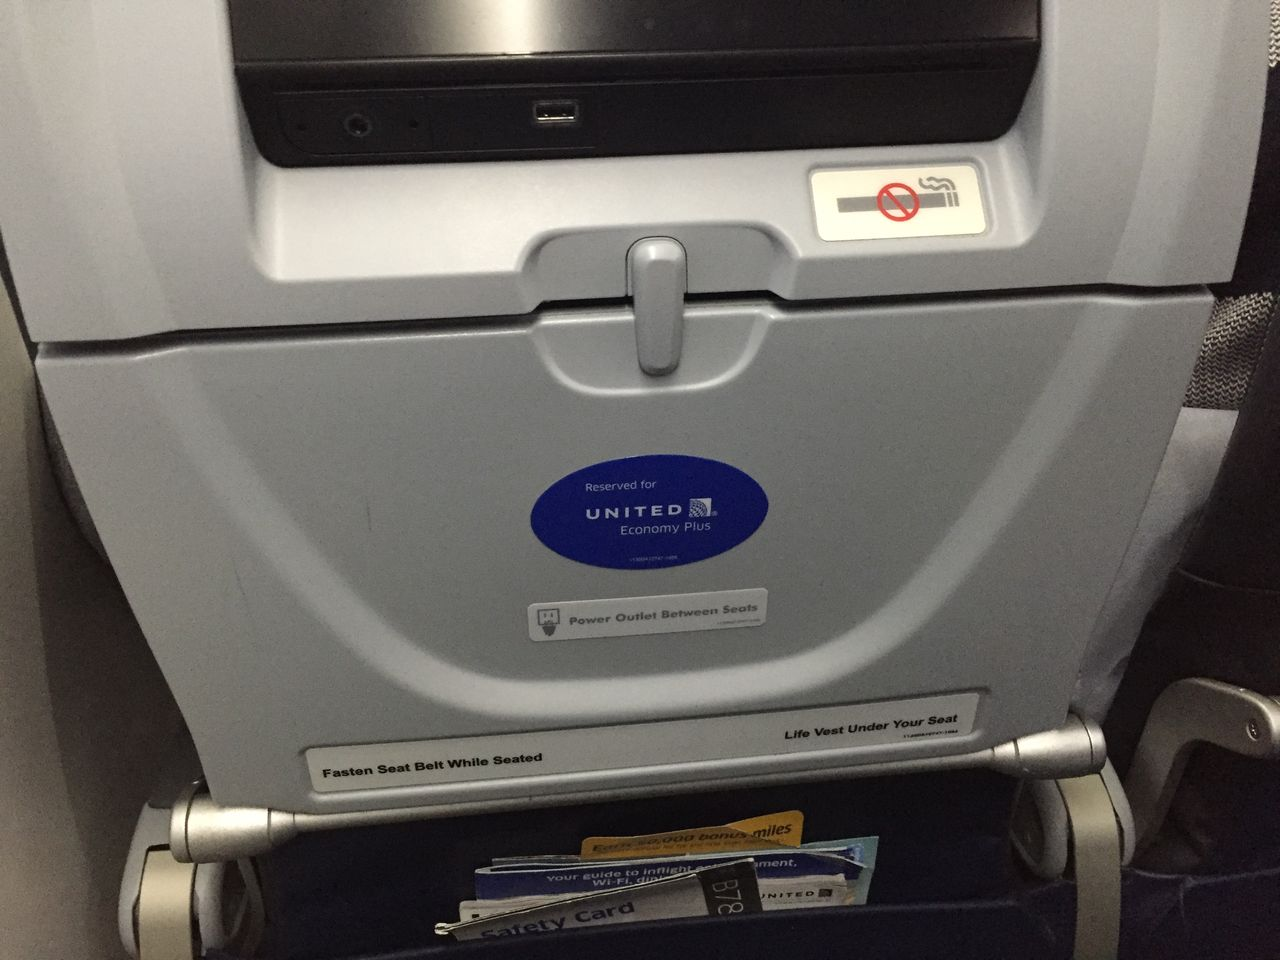 Review Of United Flight From San Francisco To London In Premium Eco